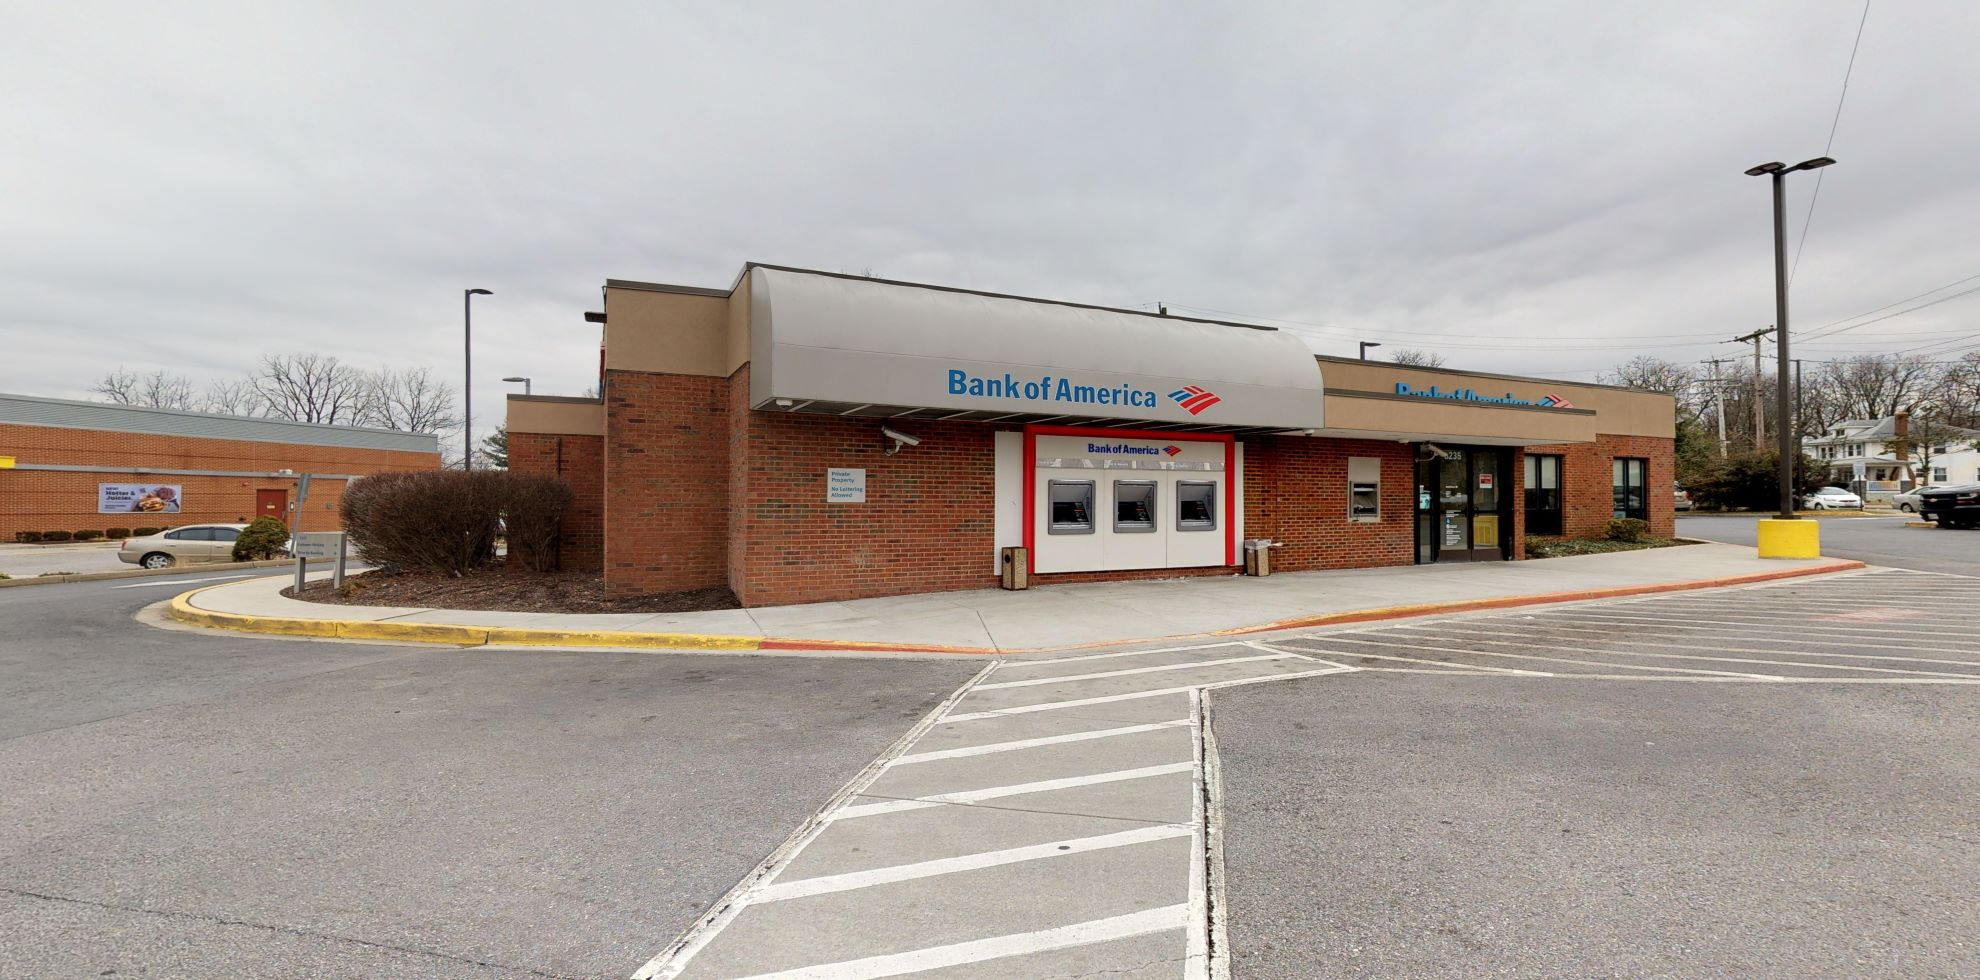 Bank of America financial center with drive-thru ATM   8235 Liberty Rd, Baltimore, MD 21244